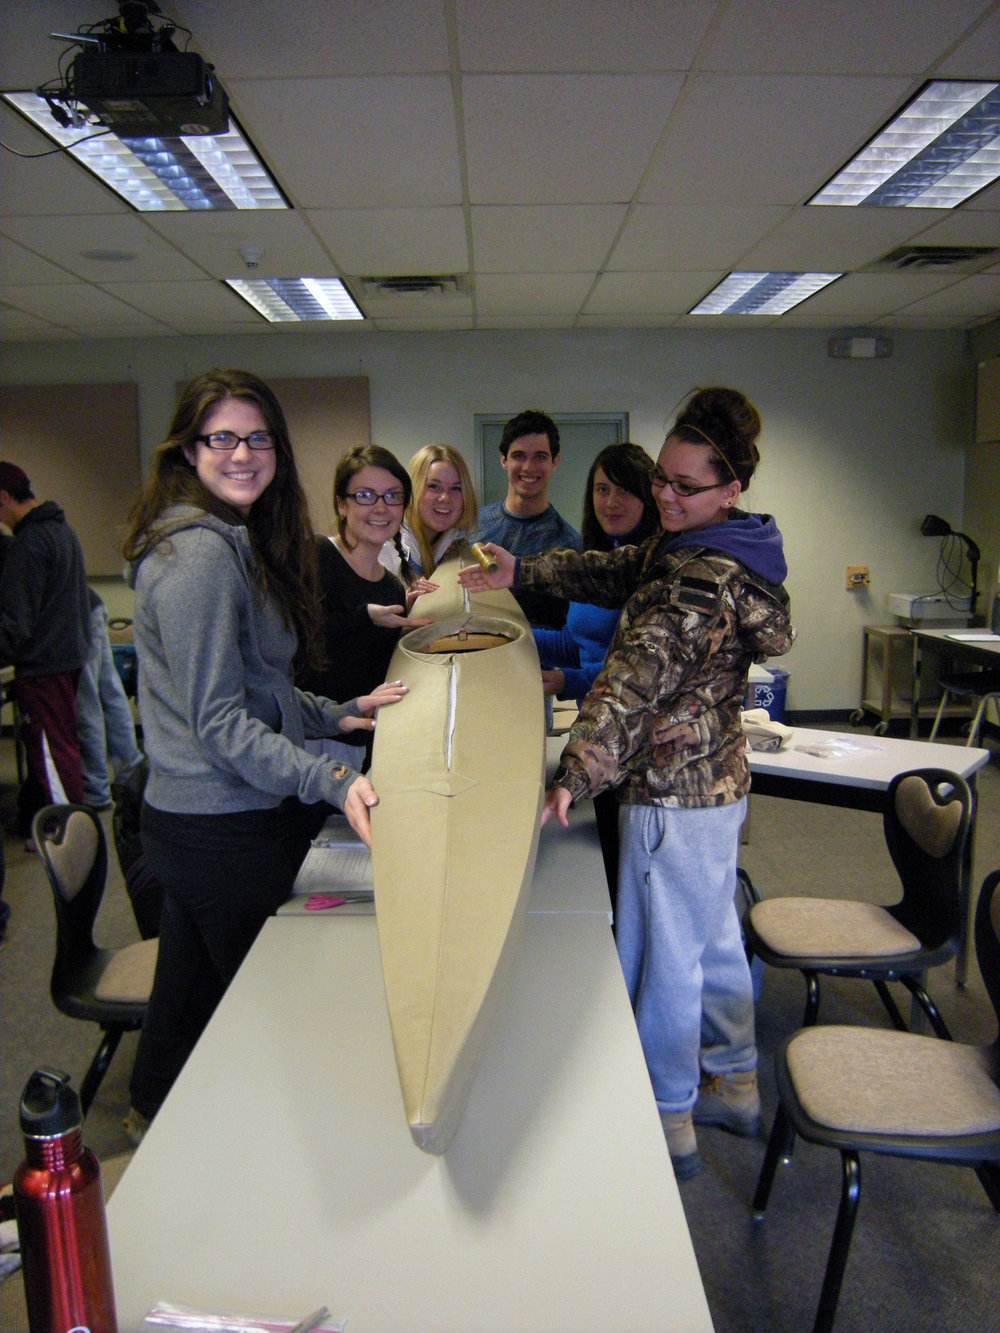 2012Nov-FlemingCollege-EducationOutreach-Kayal_DSCN3121 adjustedbest.jpg